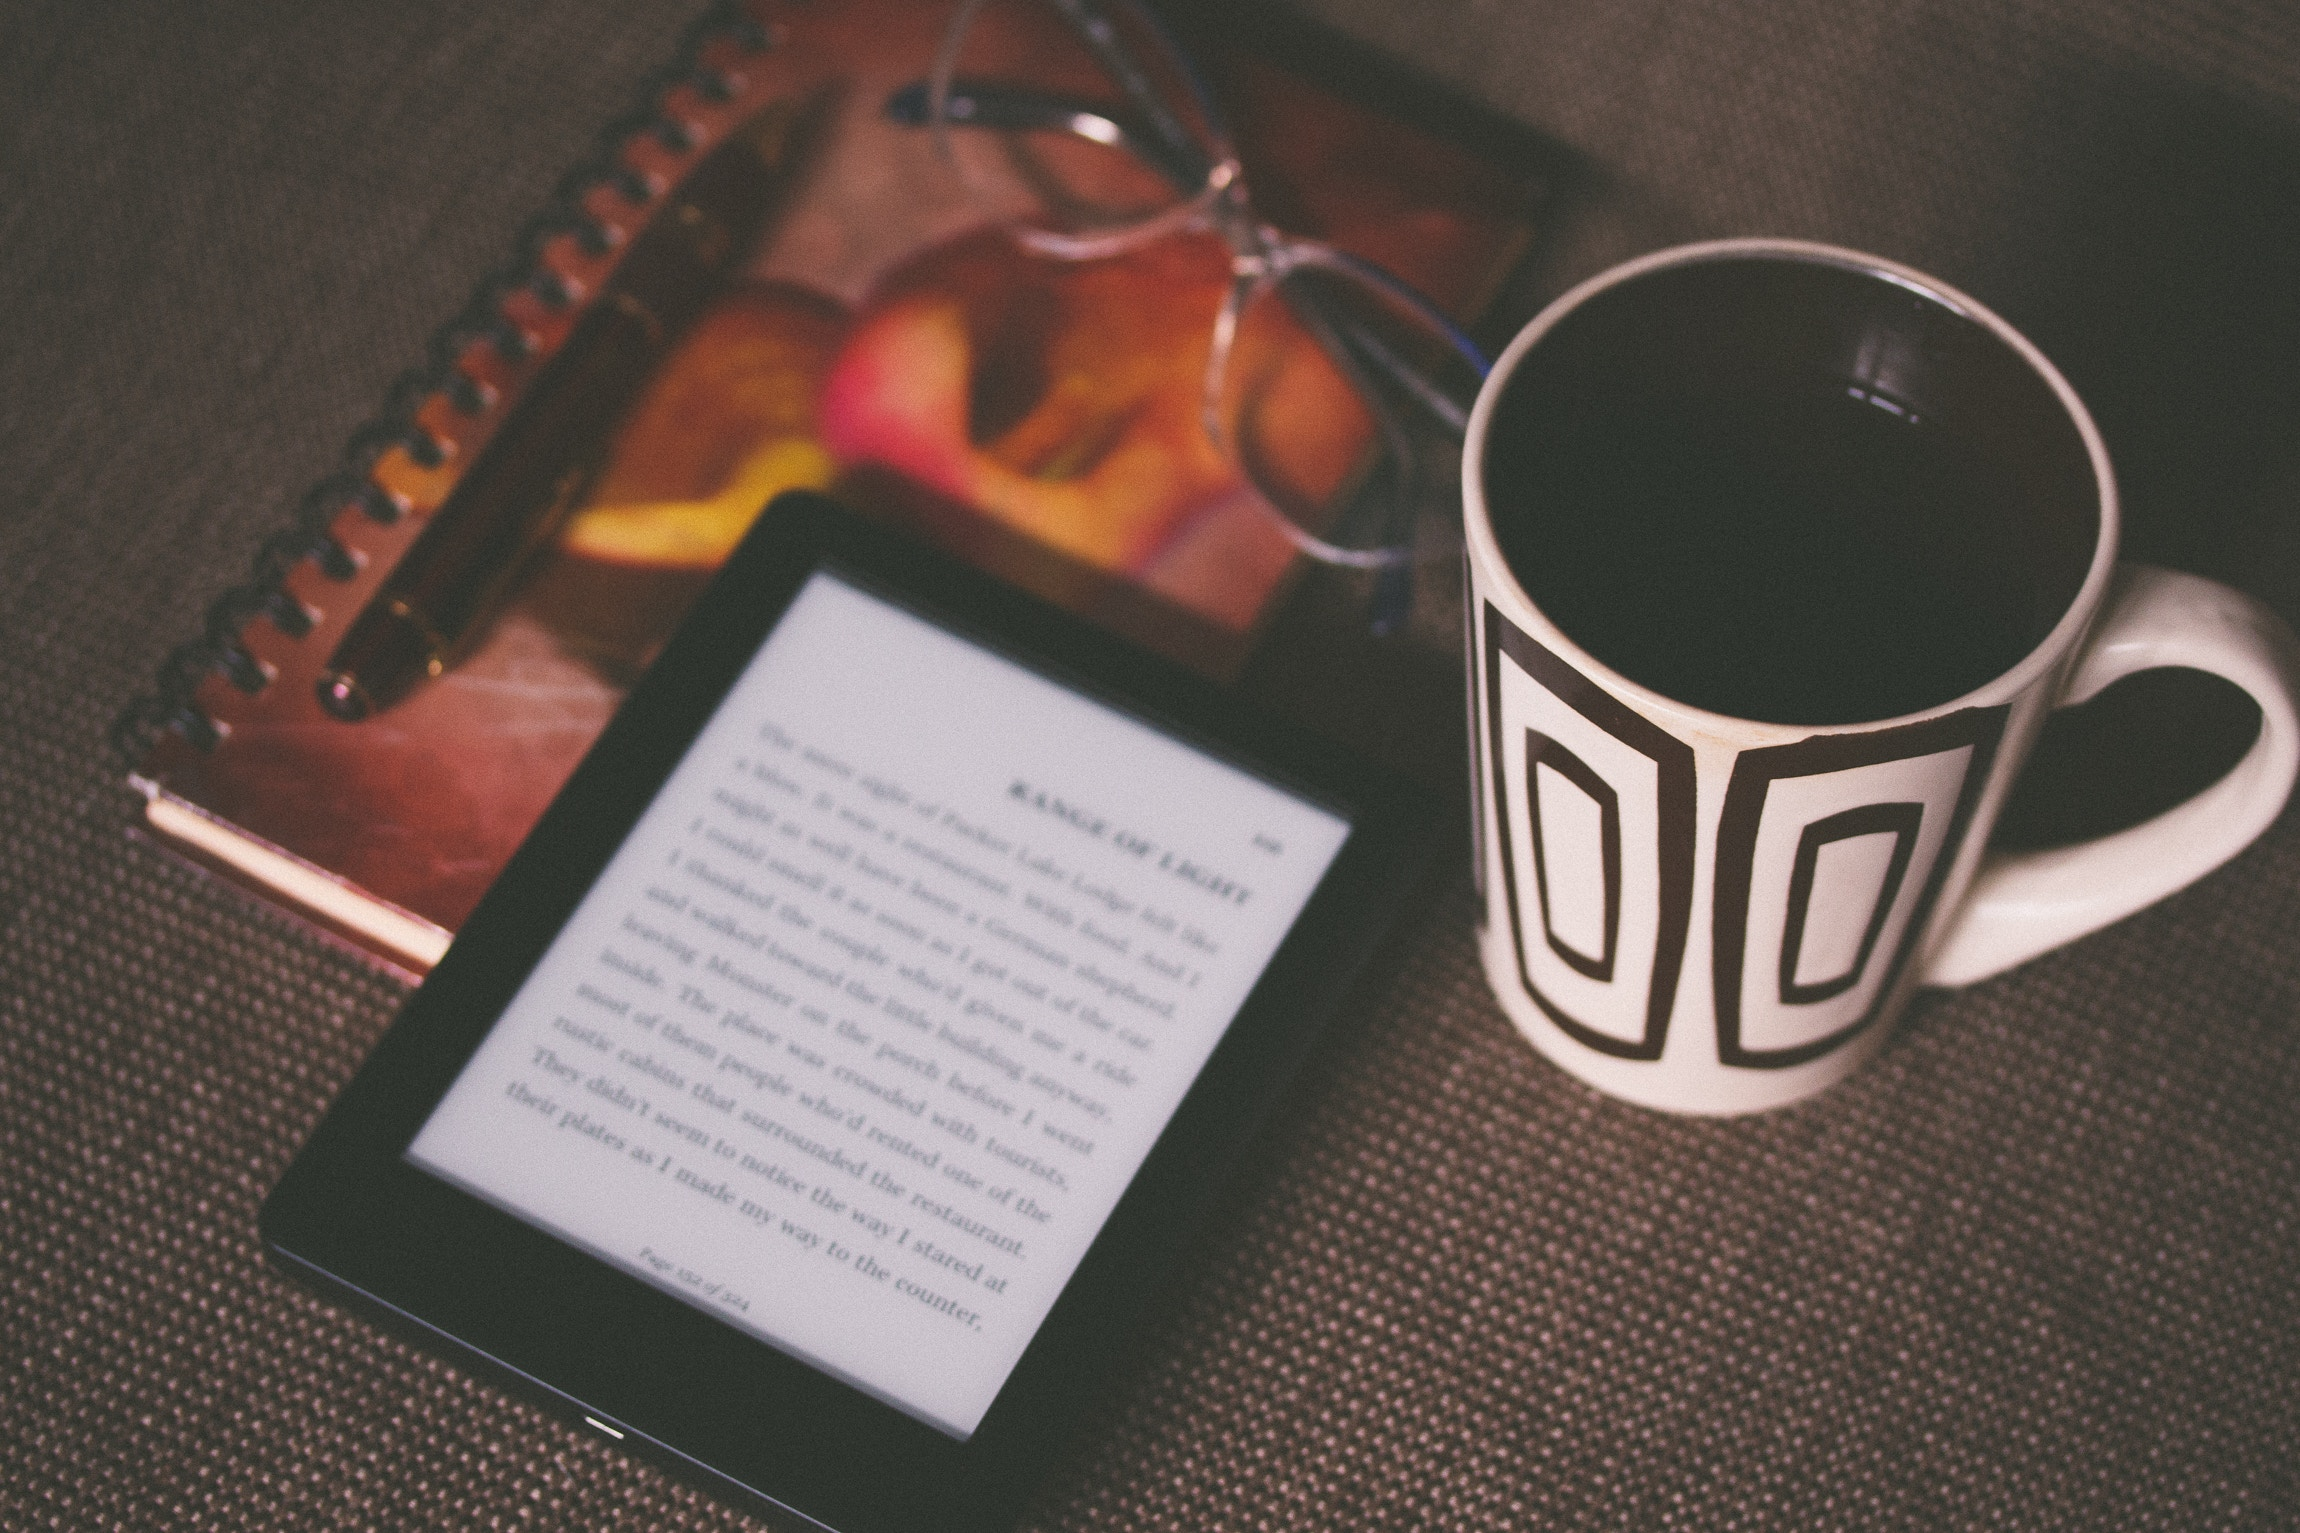 Non-Fiction E-Book Writing - E-Books are lead-generating magnets. They provide relevant information that draws people in.Let your voice be heard!Photo by Aliis Sinisaluon Unsplash